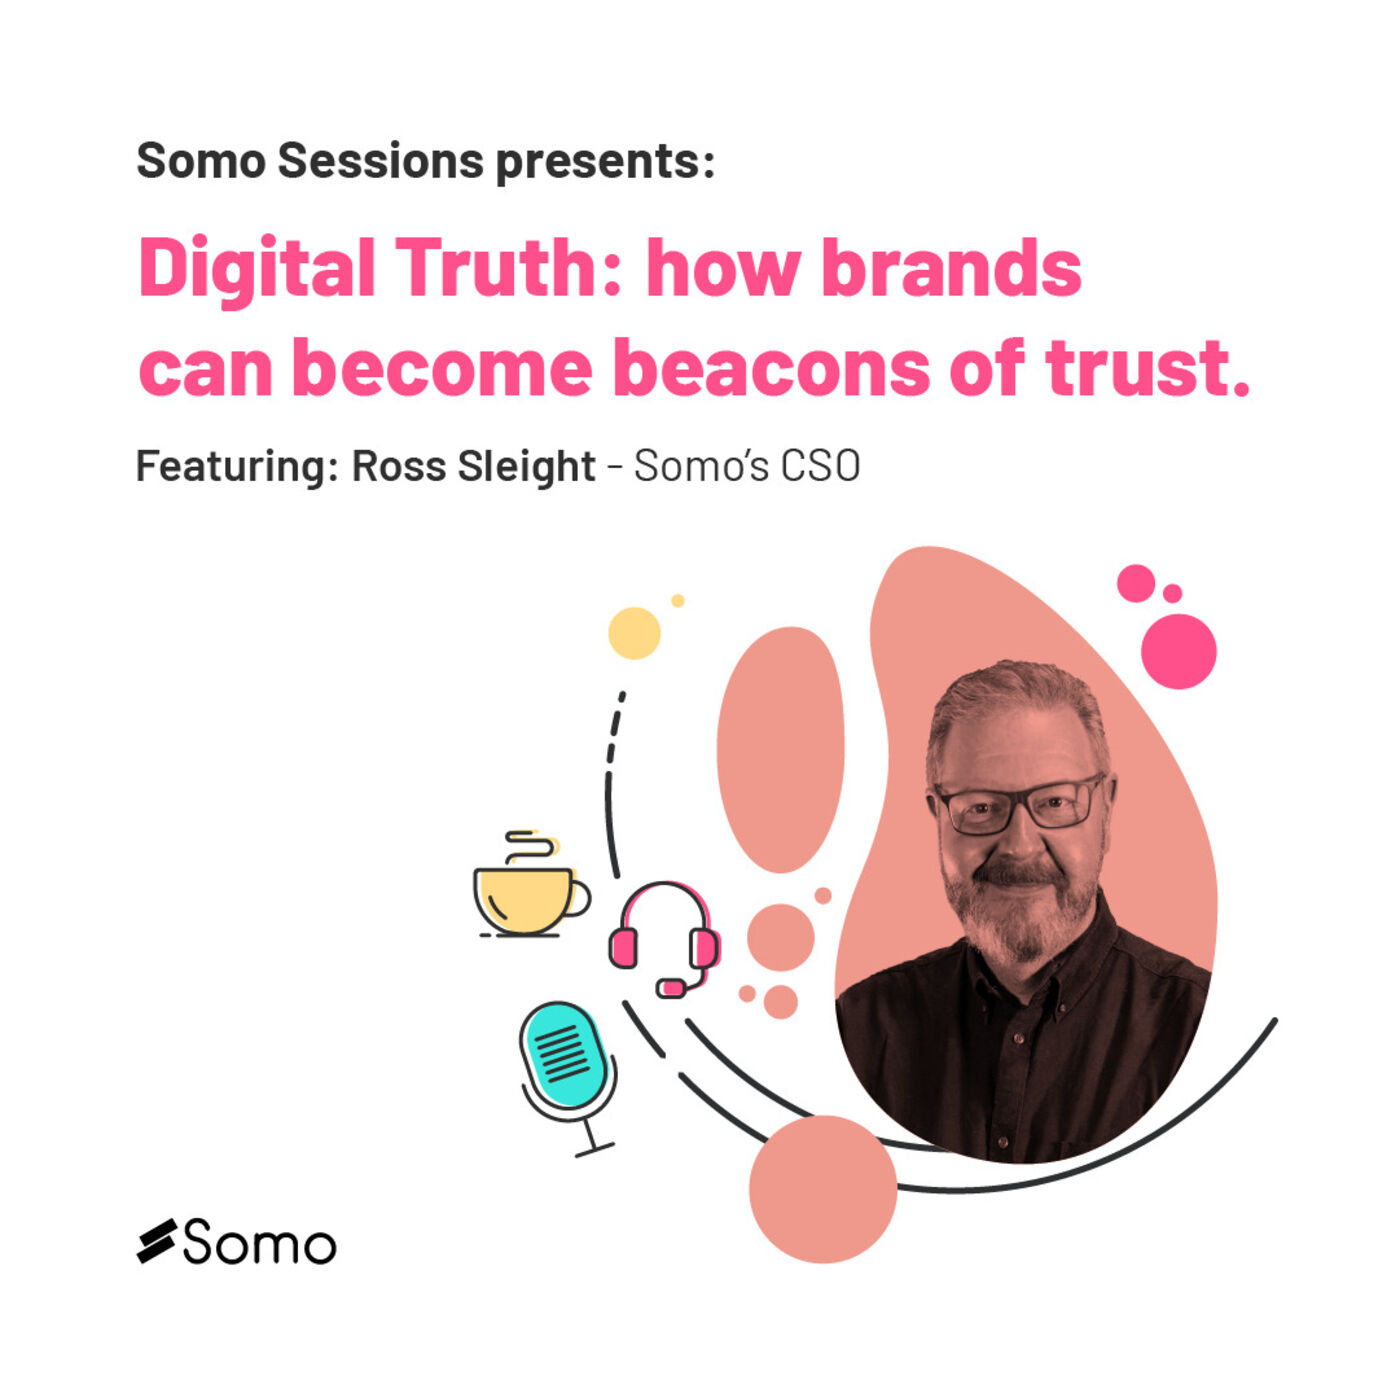 5. Digital Truth: how brands can become beacons of trust